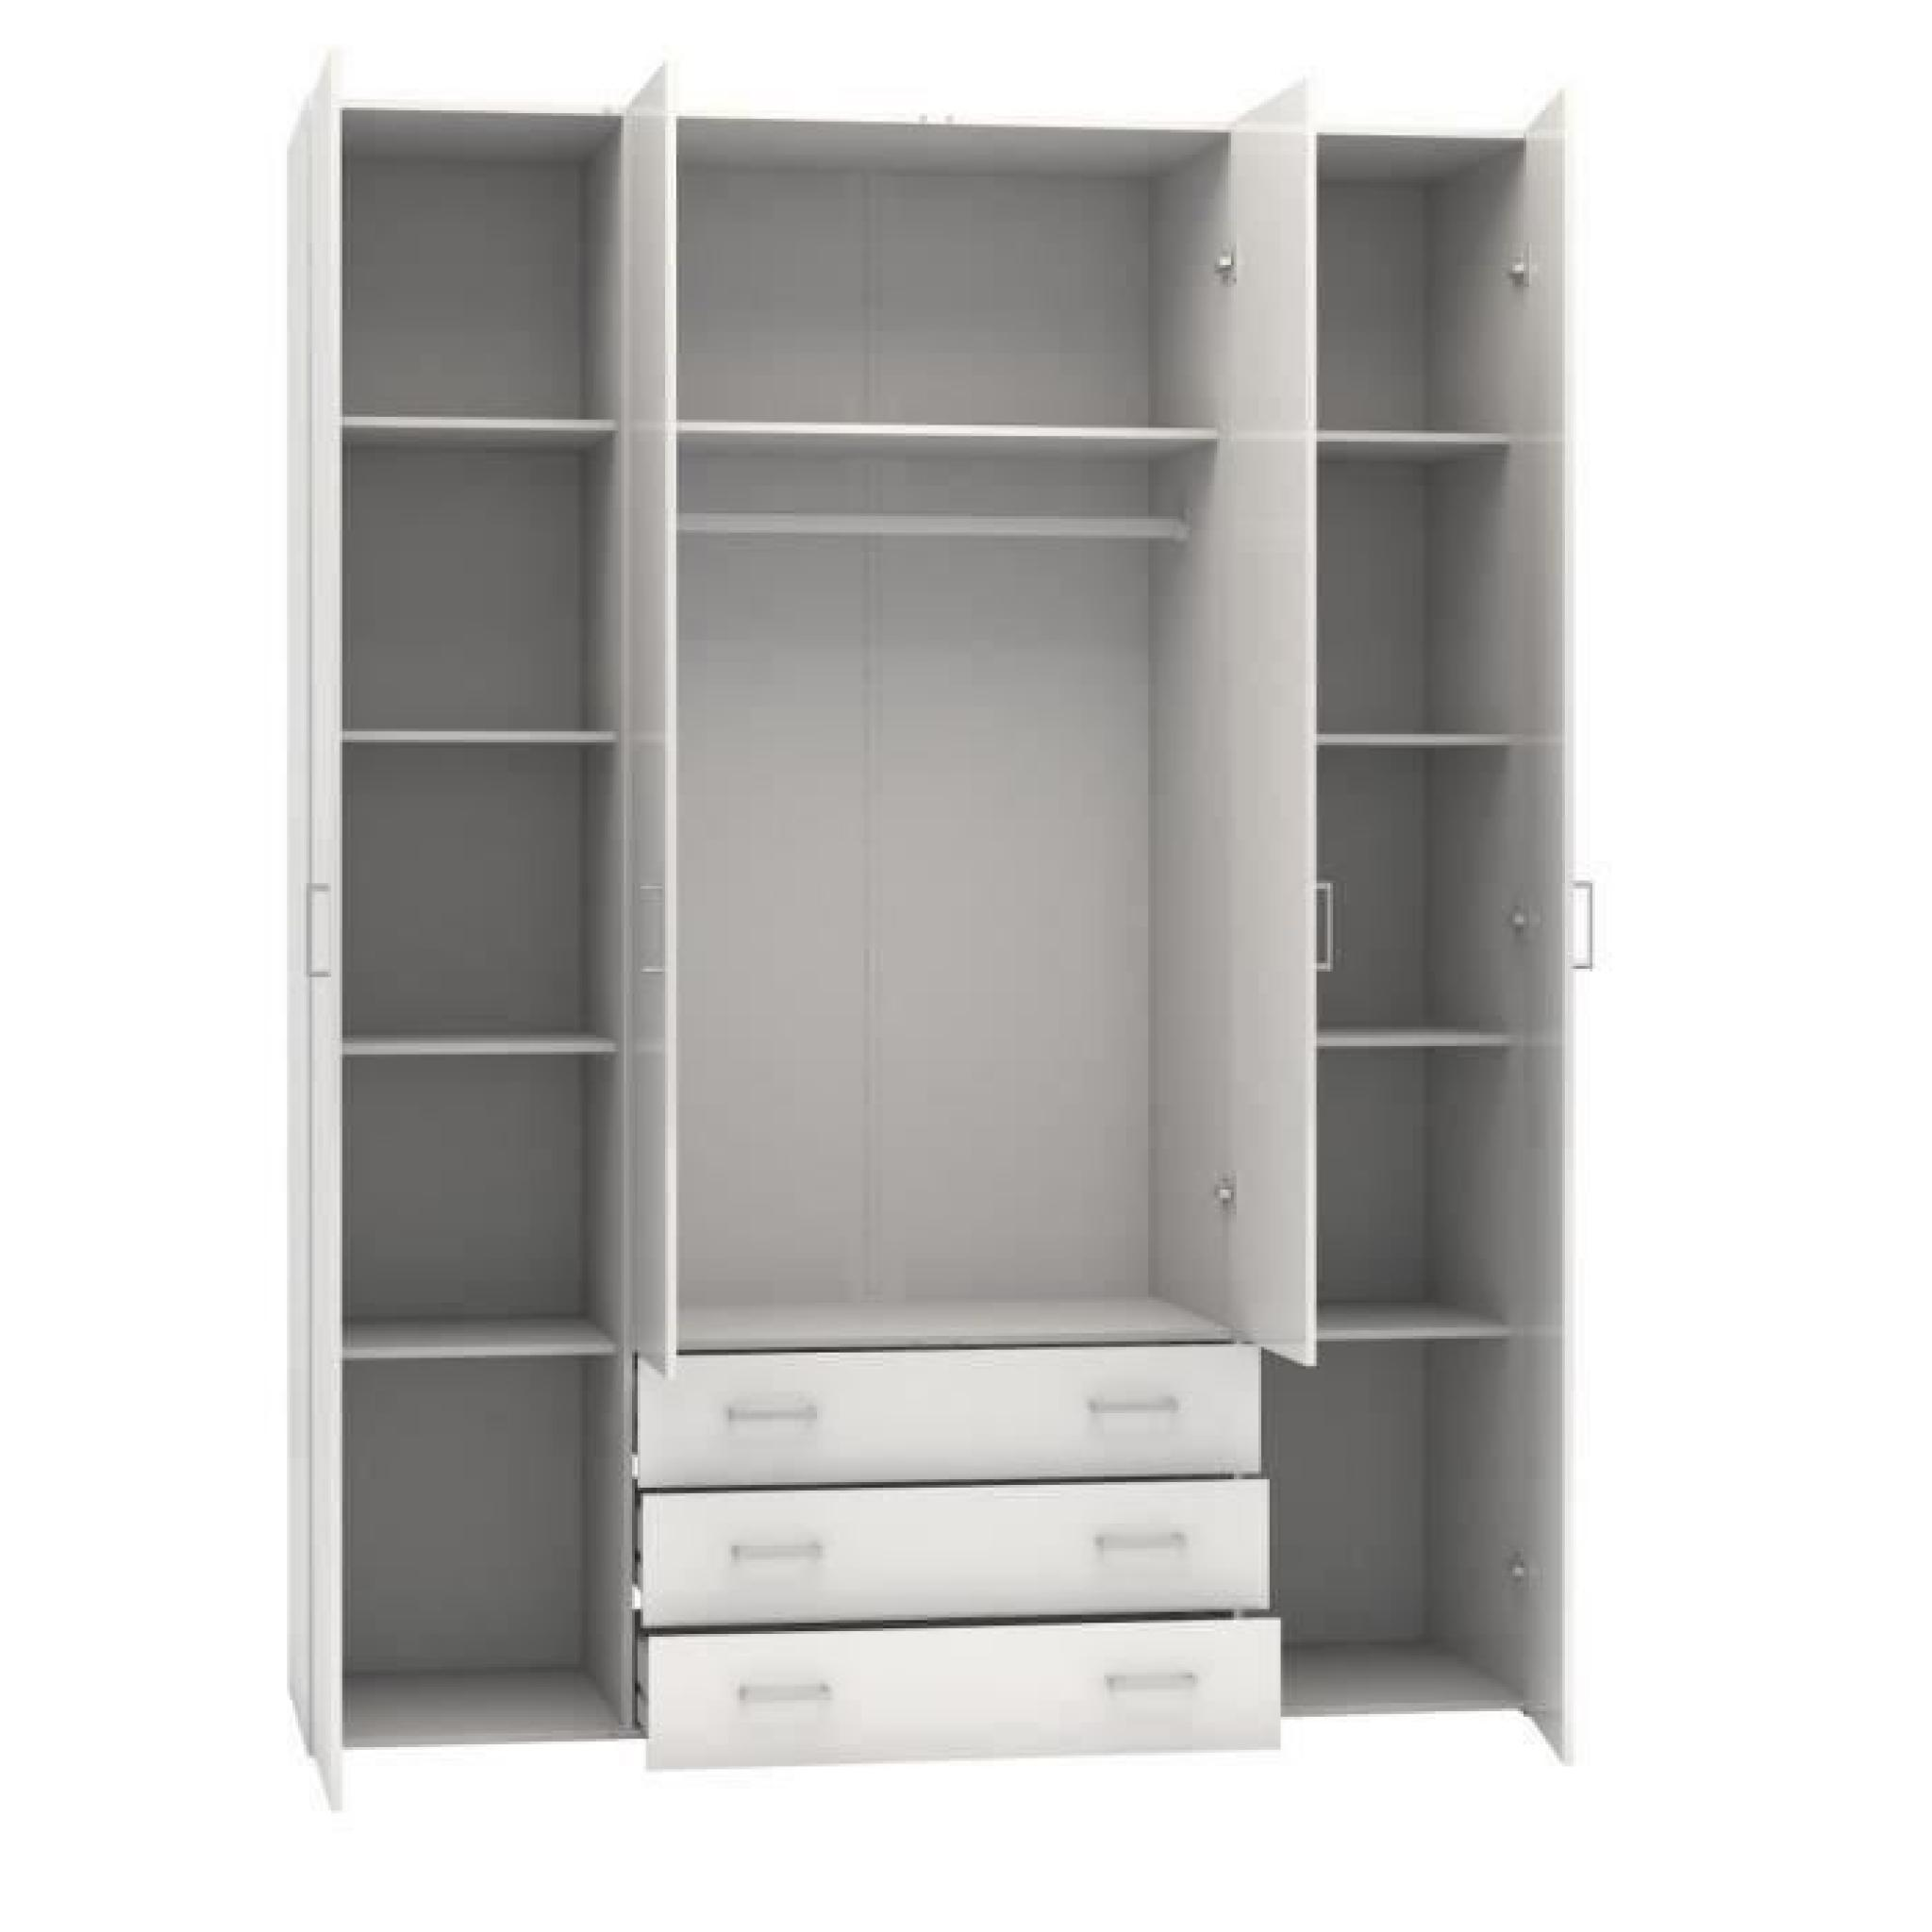 Space Armoire 154x49x200 Cm Blanc Brillant